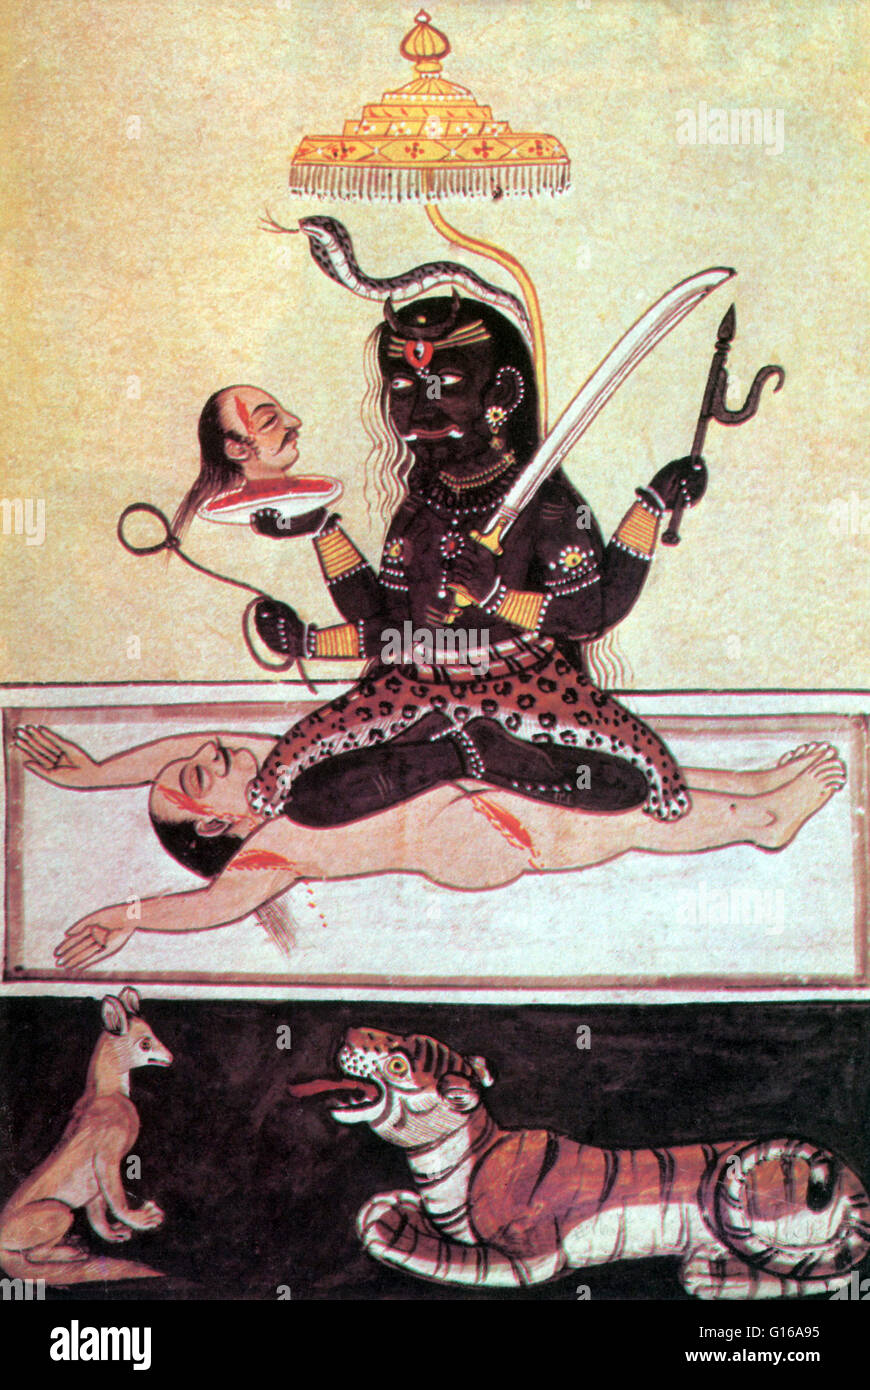 Kali Is The Fierce Aspect Of The Goddess Durga Kali The Black One